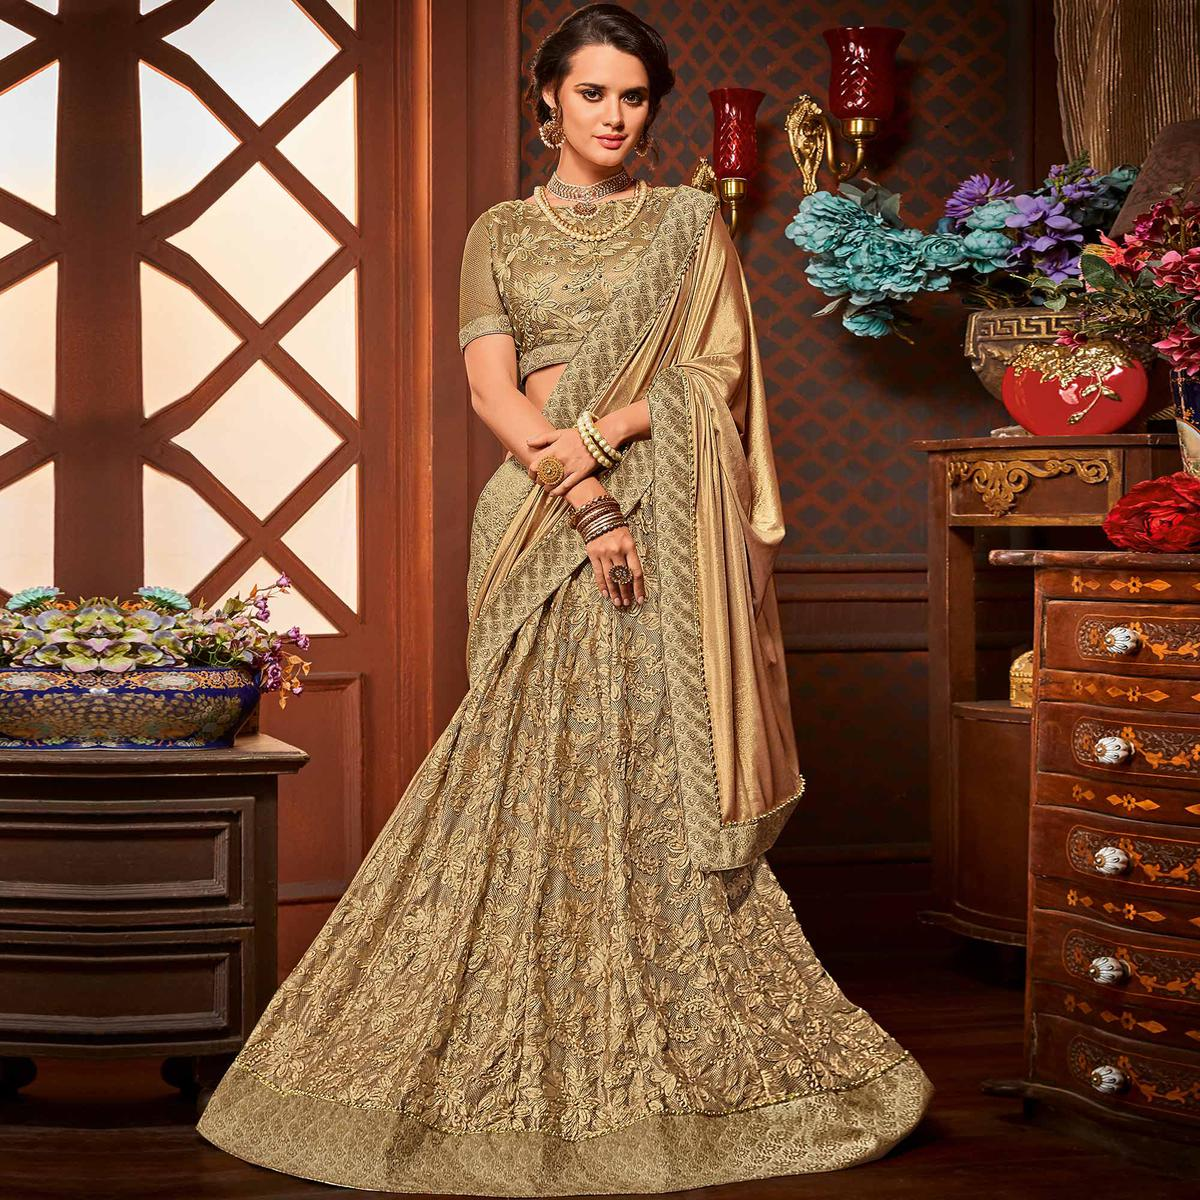 Mystic Golden Colored Designer Embroidered Partywear Half-Half Net-Jacquard Lehenga Saree